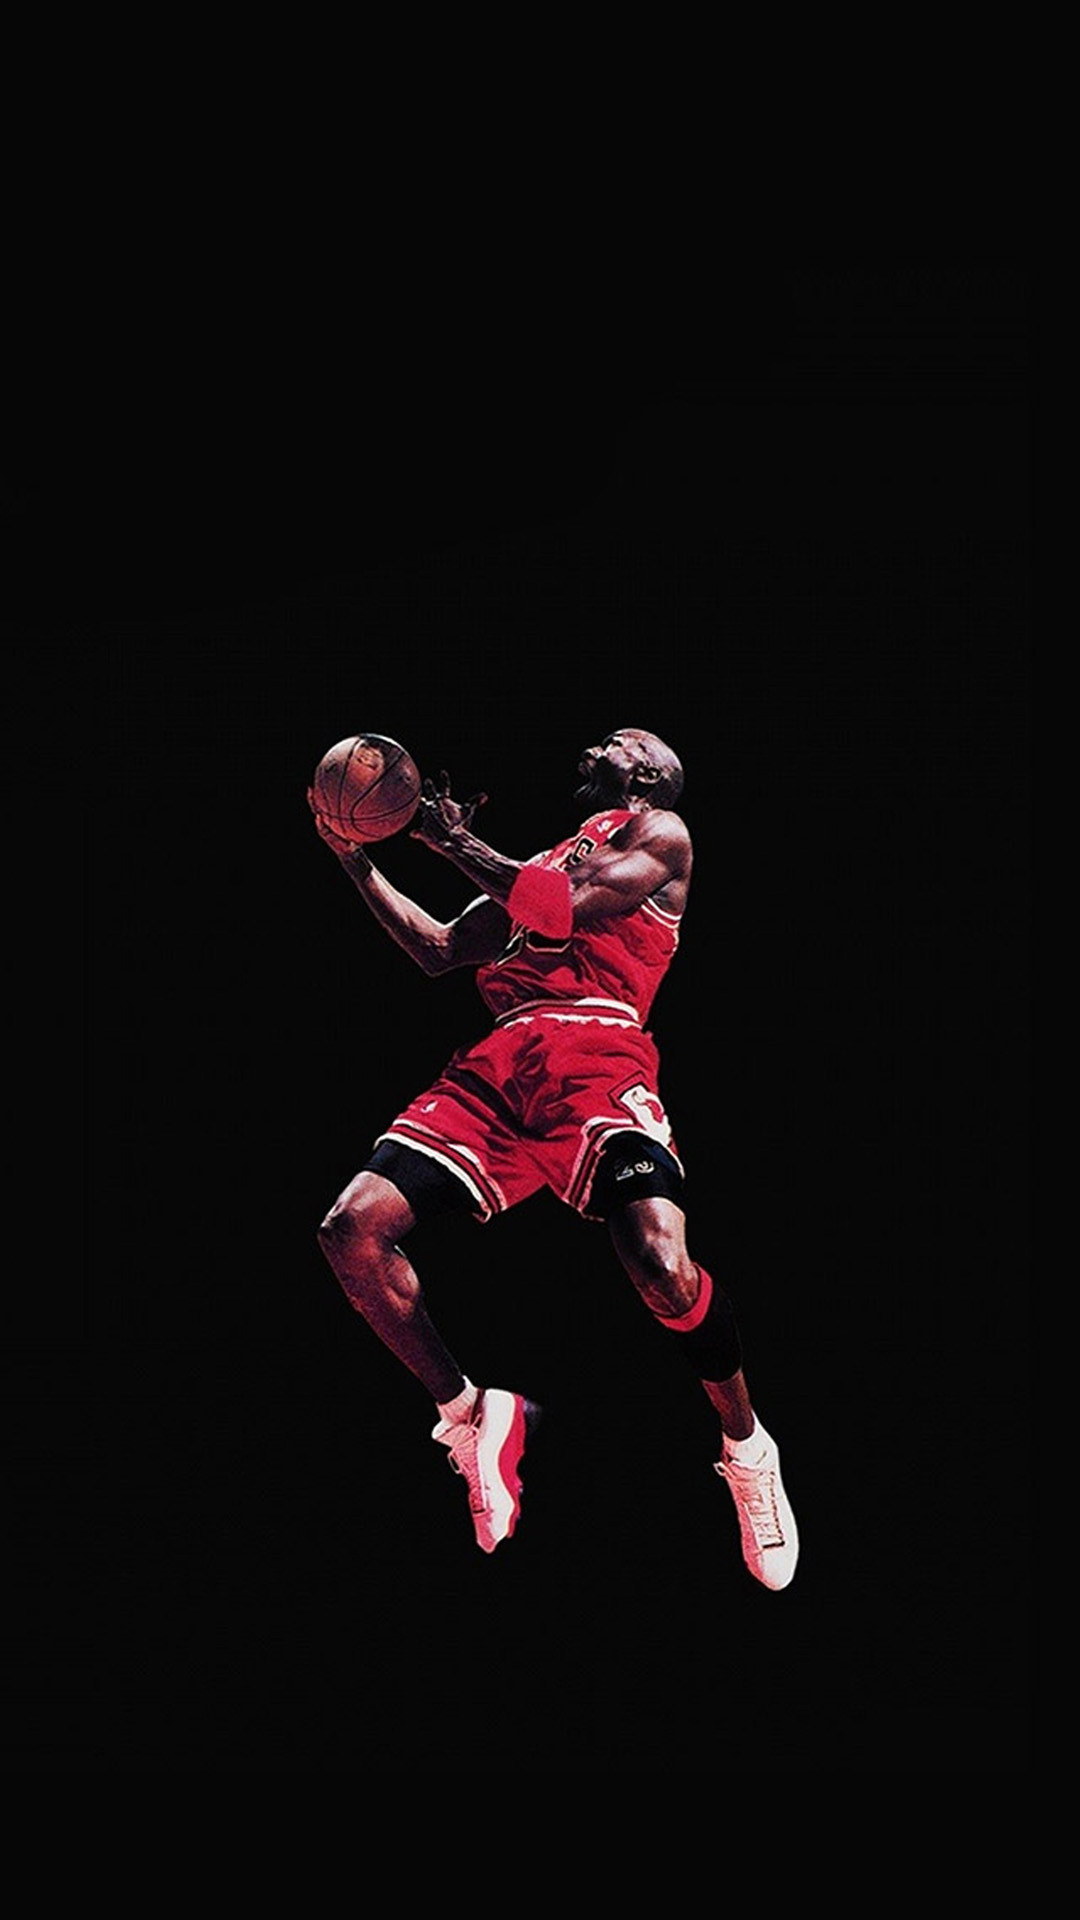 1080x1920 Explore Michael Jordan, Jordan 23, and more!